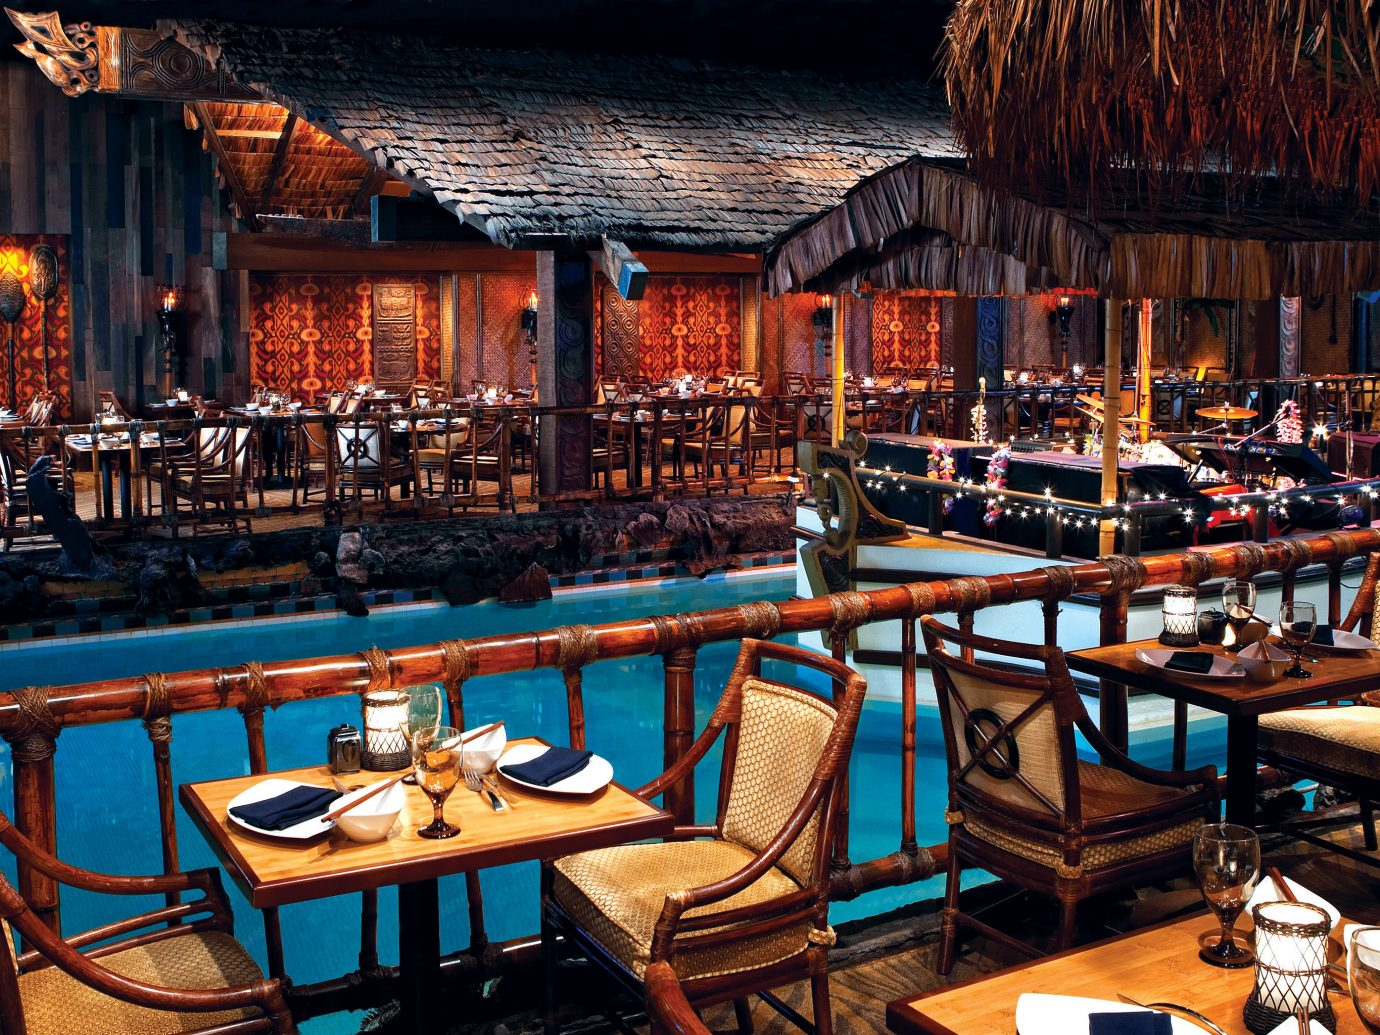 City Dining Drink Eat Luxury Nightlife Resort chair outdoor restaurant Bar estate tavern blue set furniture several grill